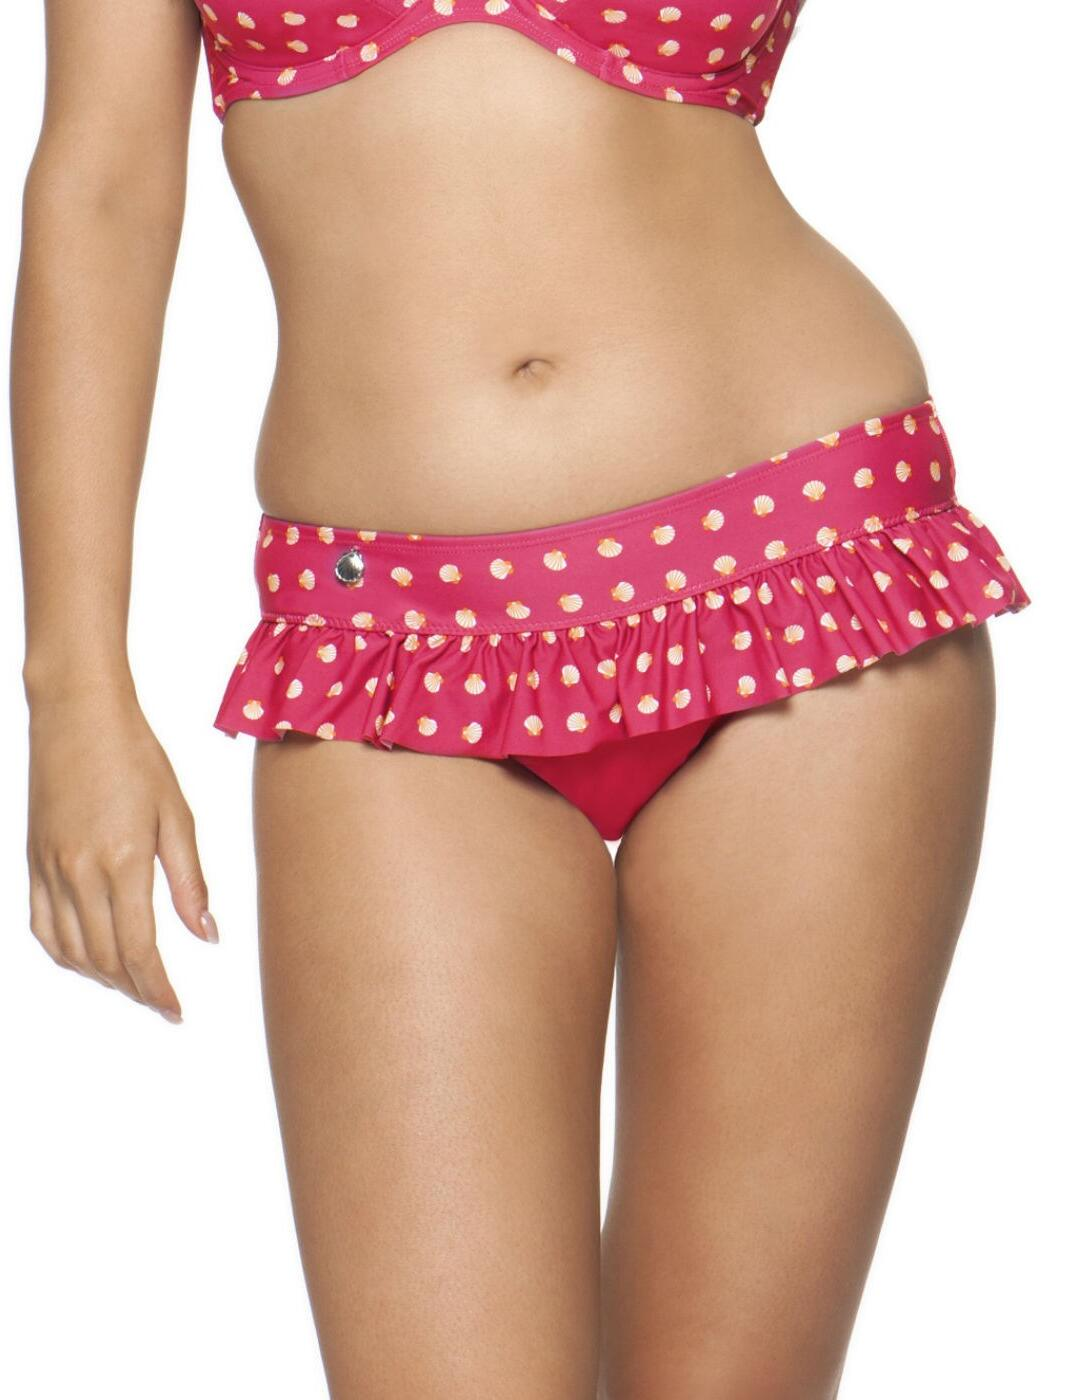 1335 Curvy Kate Seashell Skirted Bikini Brief - 1355 Skirted Brief